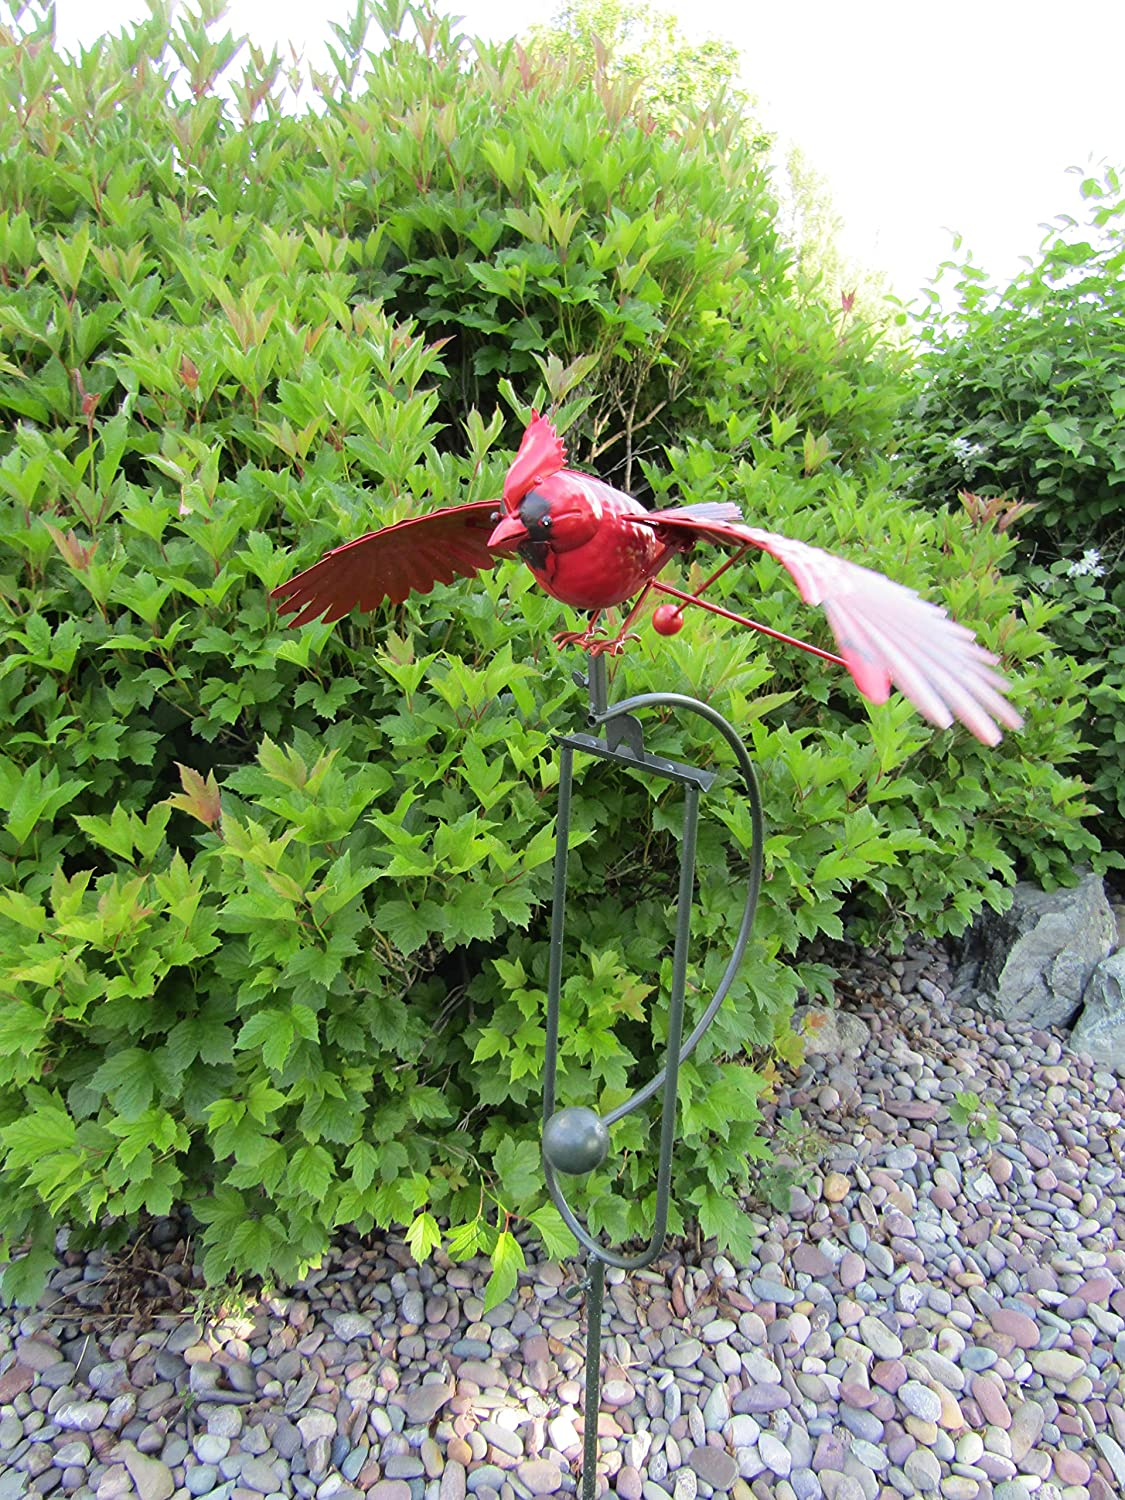 Big Sky Antiques Whimsical Wing Flapping Kinetic Metal Red Cardinal Yard Stake Wind Spinner Whirly-Gig Windmill Garden Art Bird